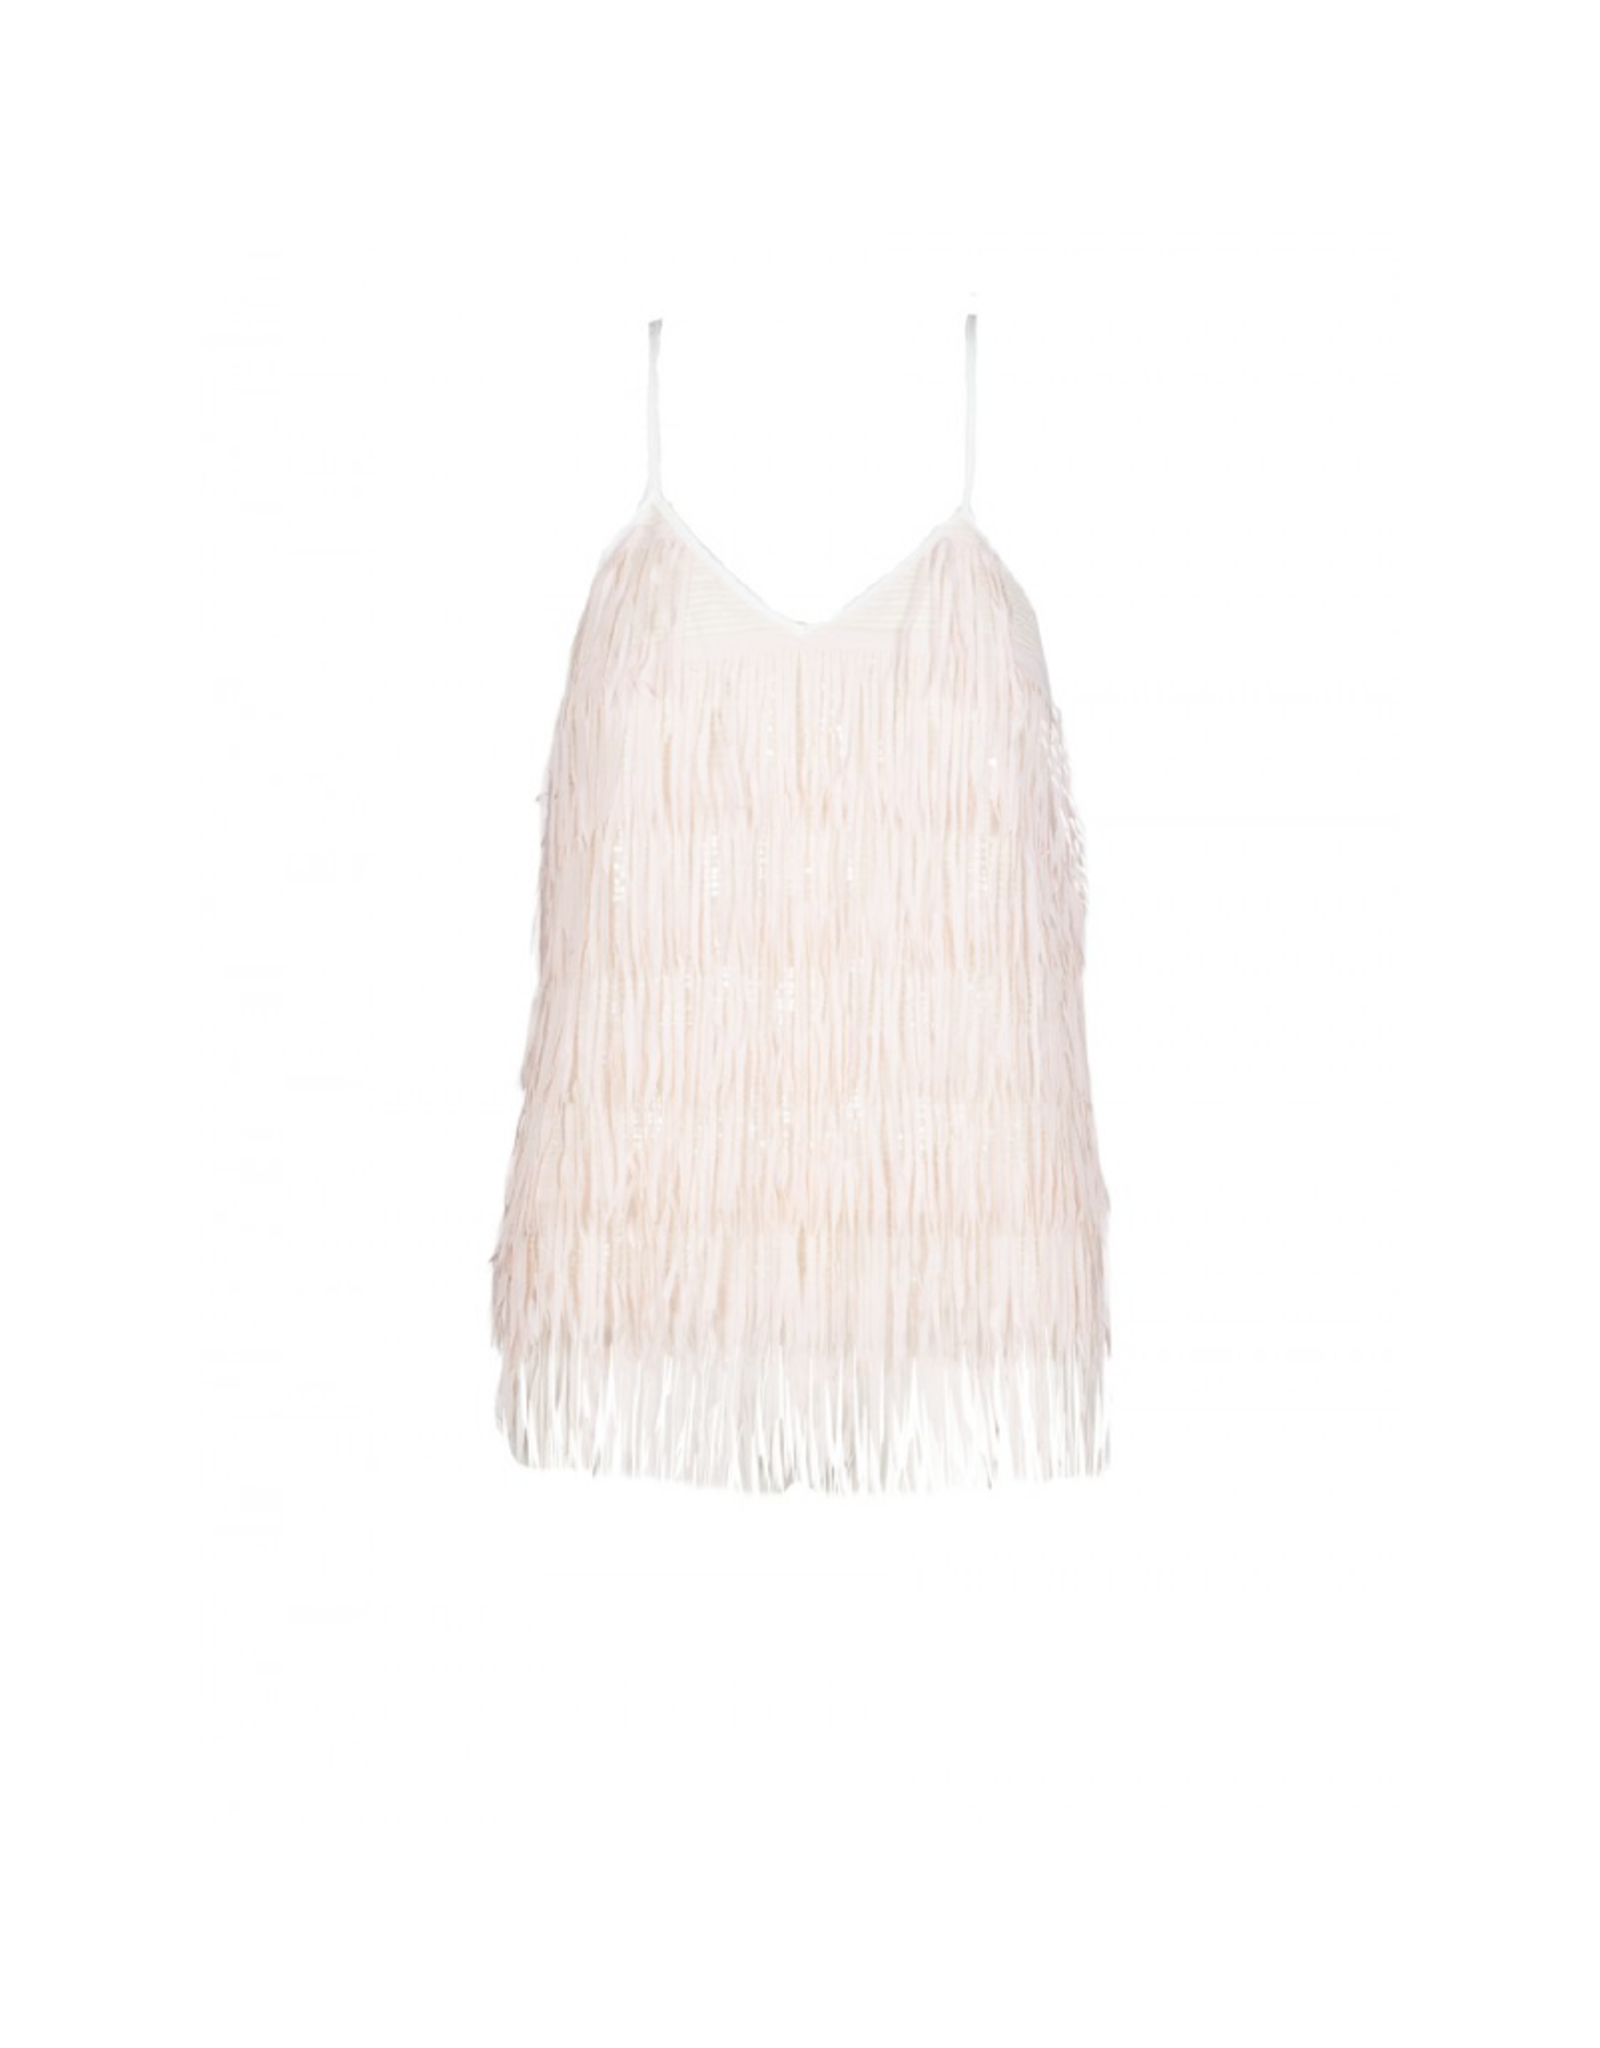 Anonyme Tracy Thin Strap Feather Top